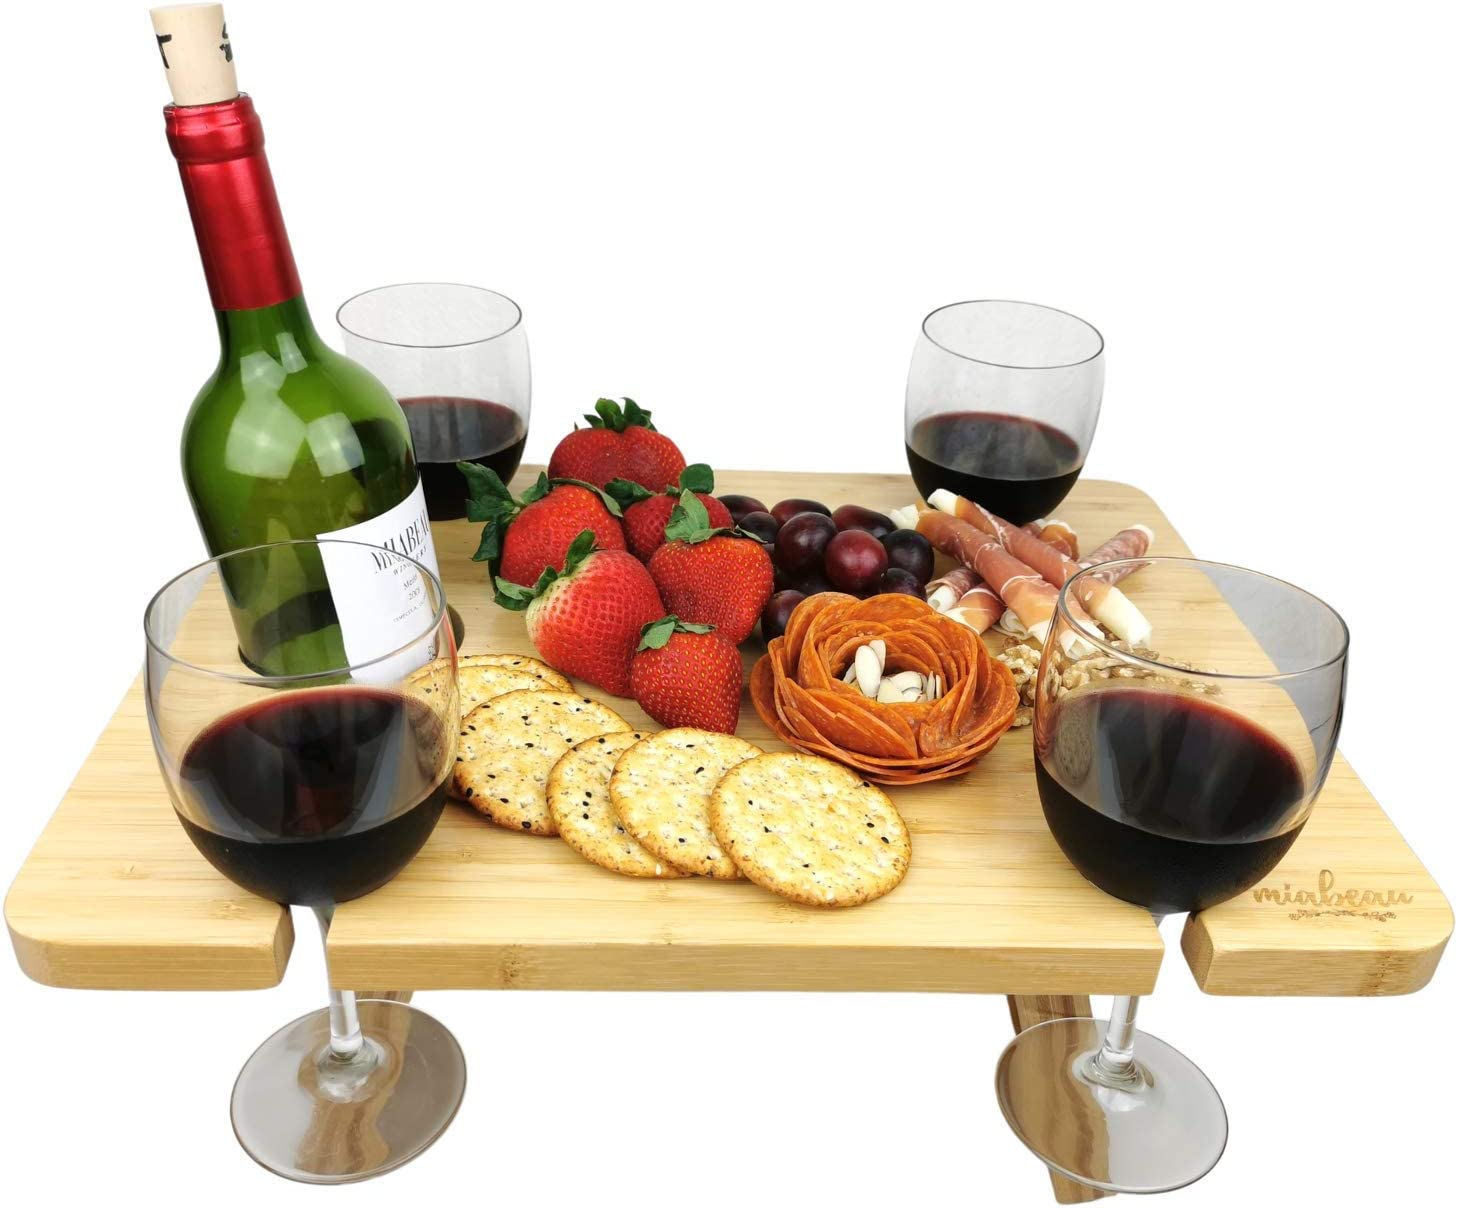 MIABEAU Portable Wine Picnic Table - Premium Natural Bamboo Folding Charcuterie Meat and Cheese Tray with Bottle and Four Glass Holder for Outdoors and Indoors with a Tote Carrier Bag Natural Color